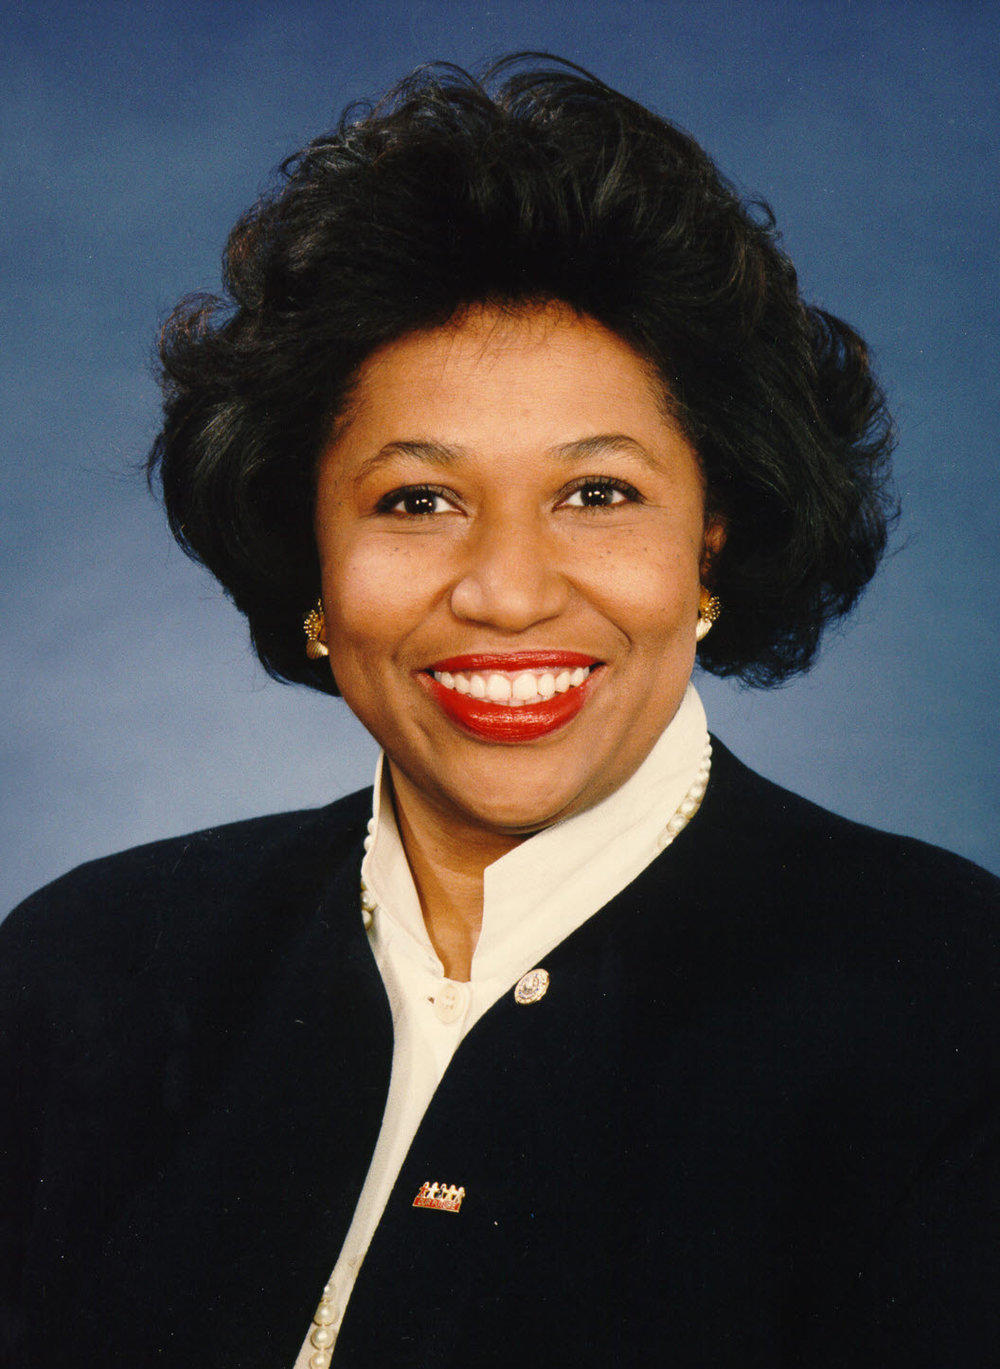 Carol Moseley-Braun - First female African-American Senator, and the first woman to defeat an incumbent senator